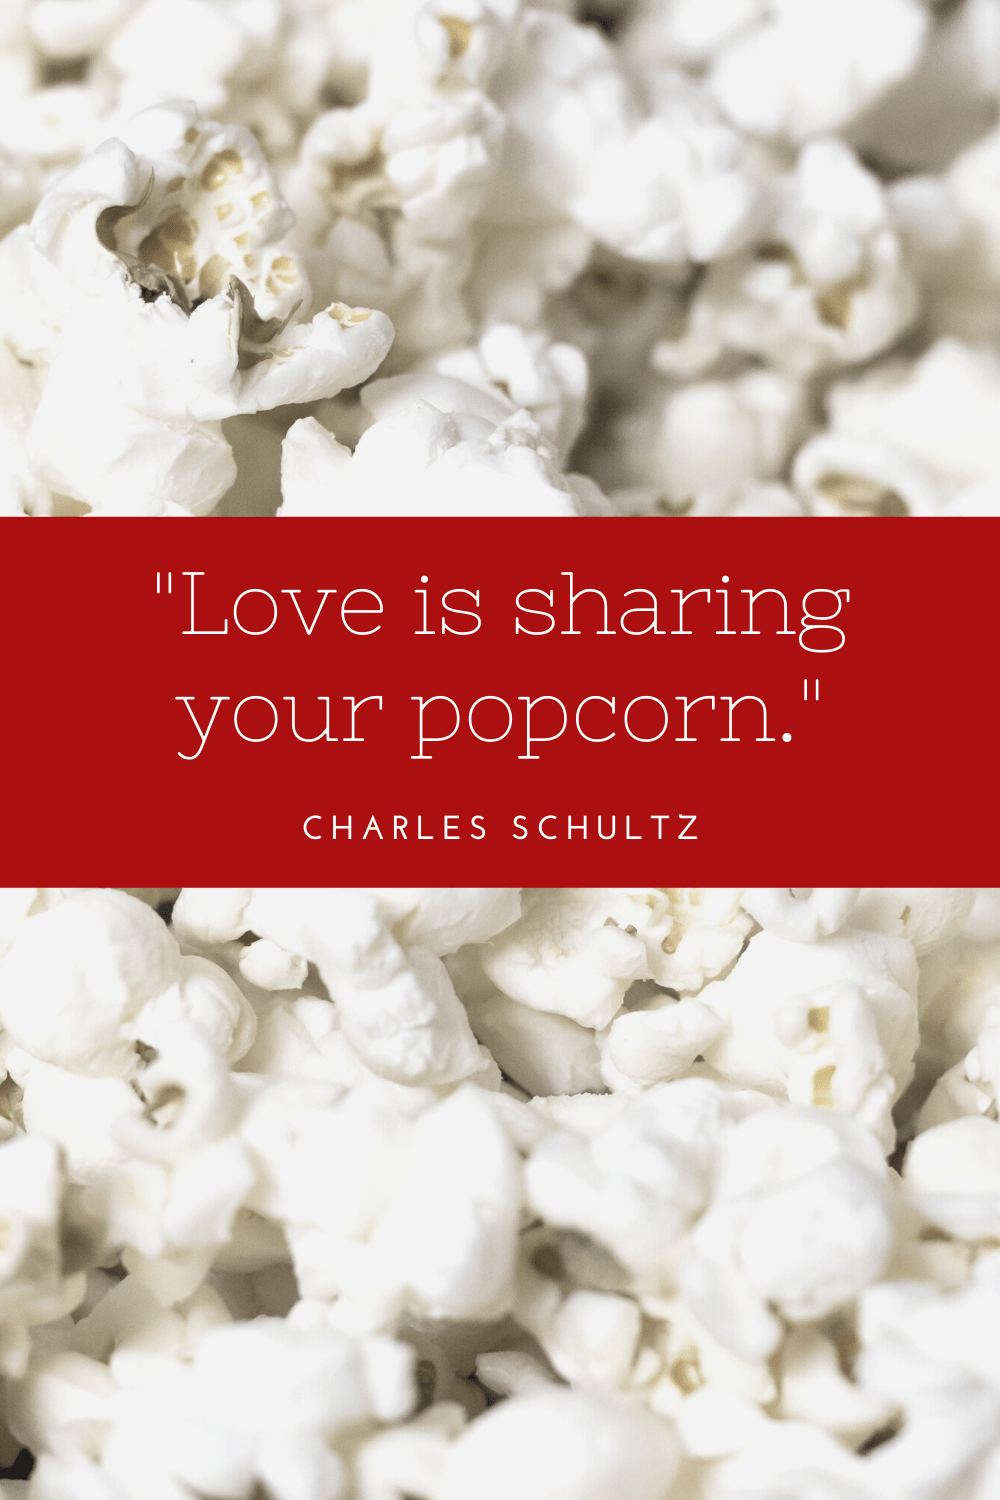 Love is sharing your popcorn. Charles Schultz #romanticquotes #cutequotes #quotes